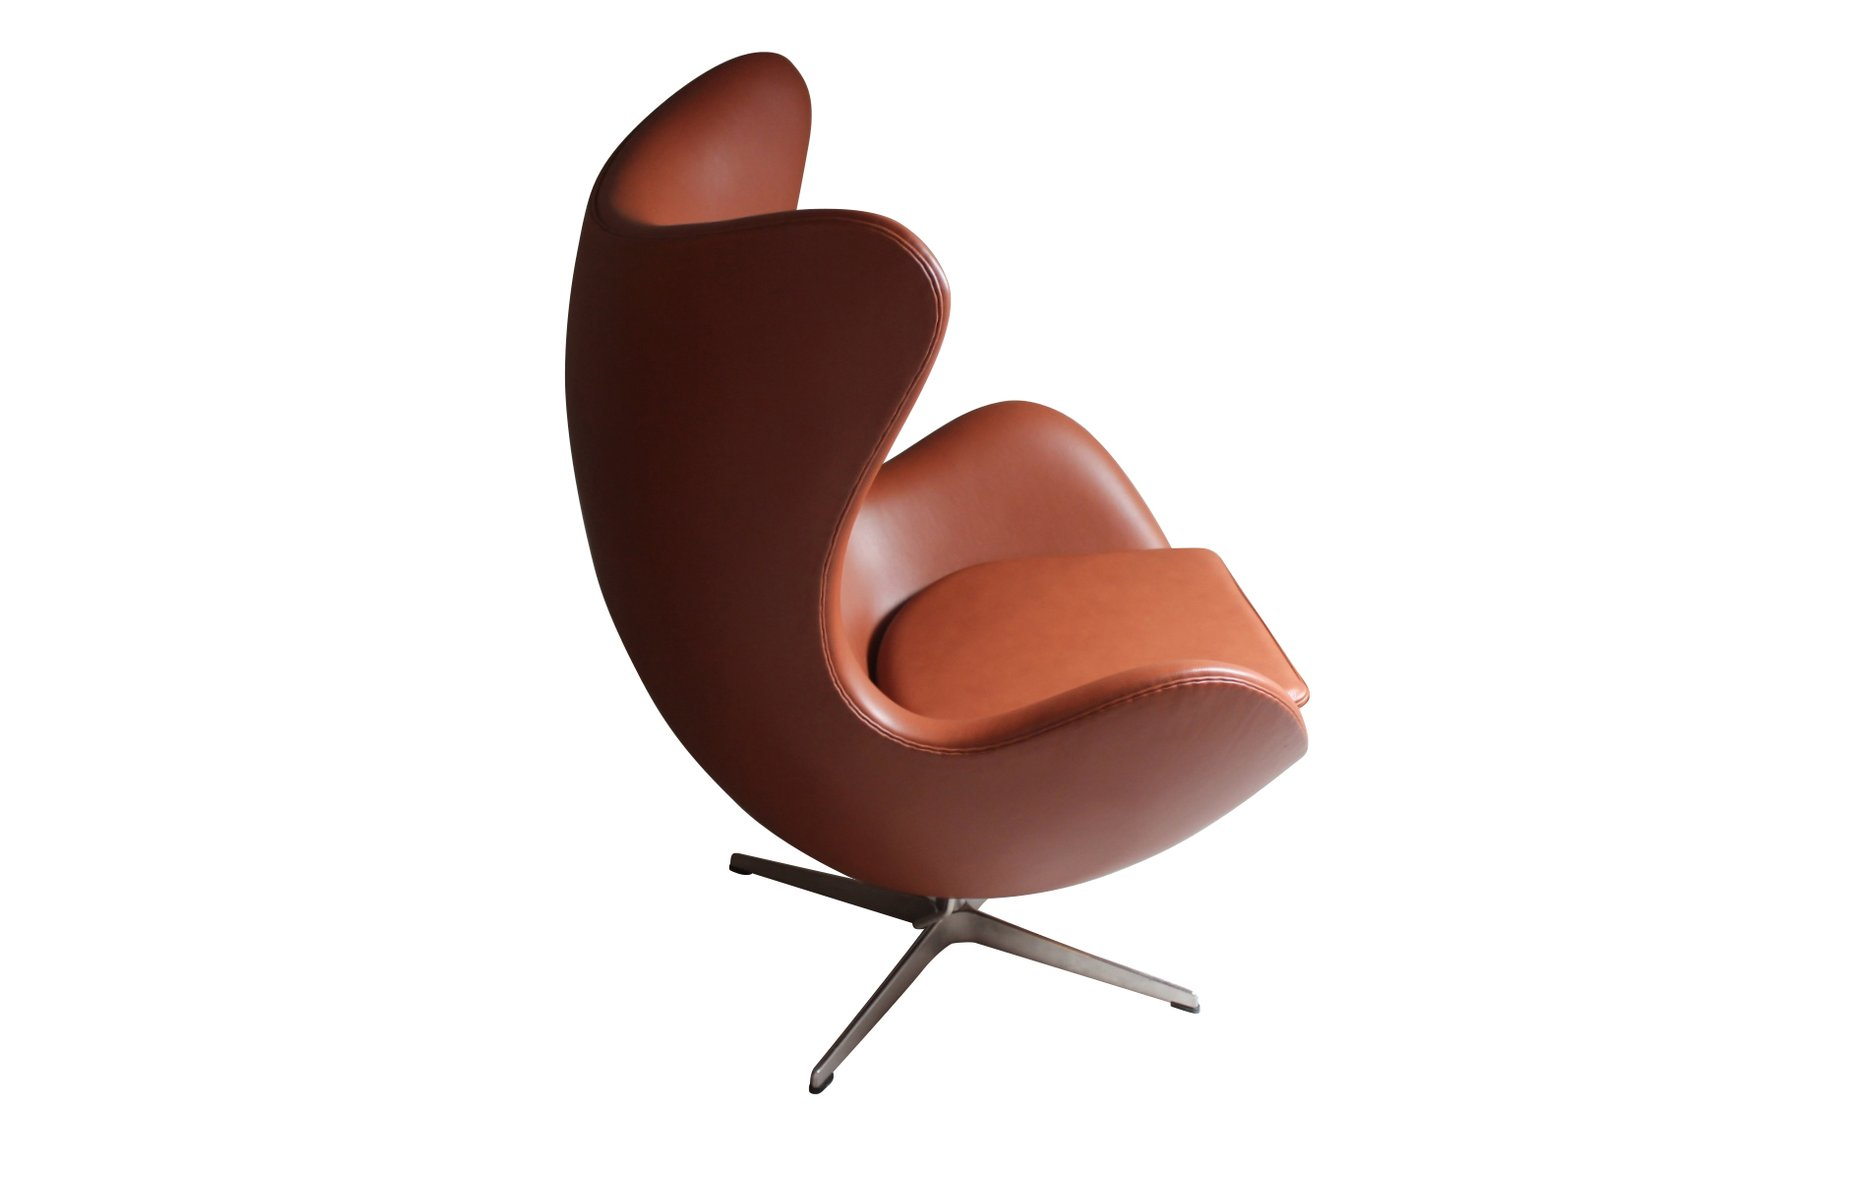 danish the egg chair by arne jacobsen for fritz hansen 1980s for sale at pamono. Black Bedroom Furniture Sets. Home Design Ideas